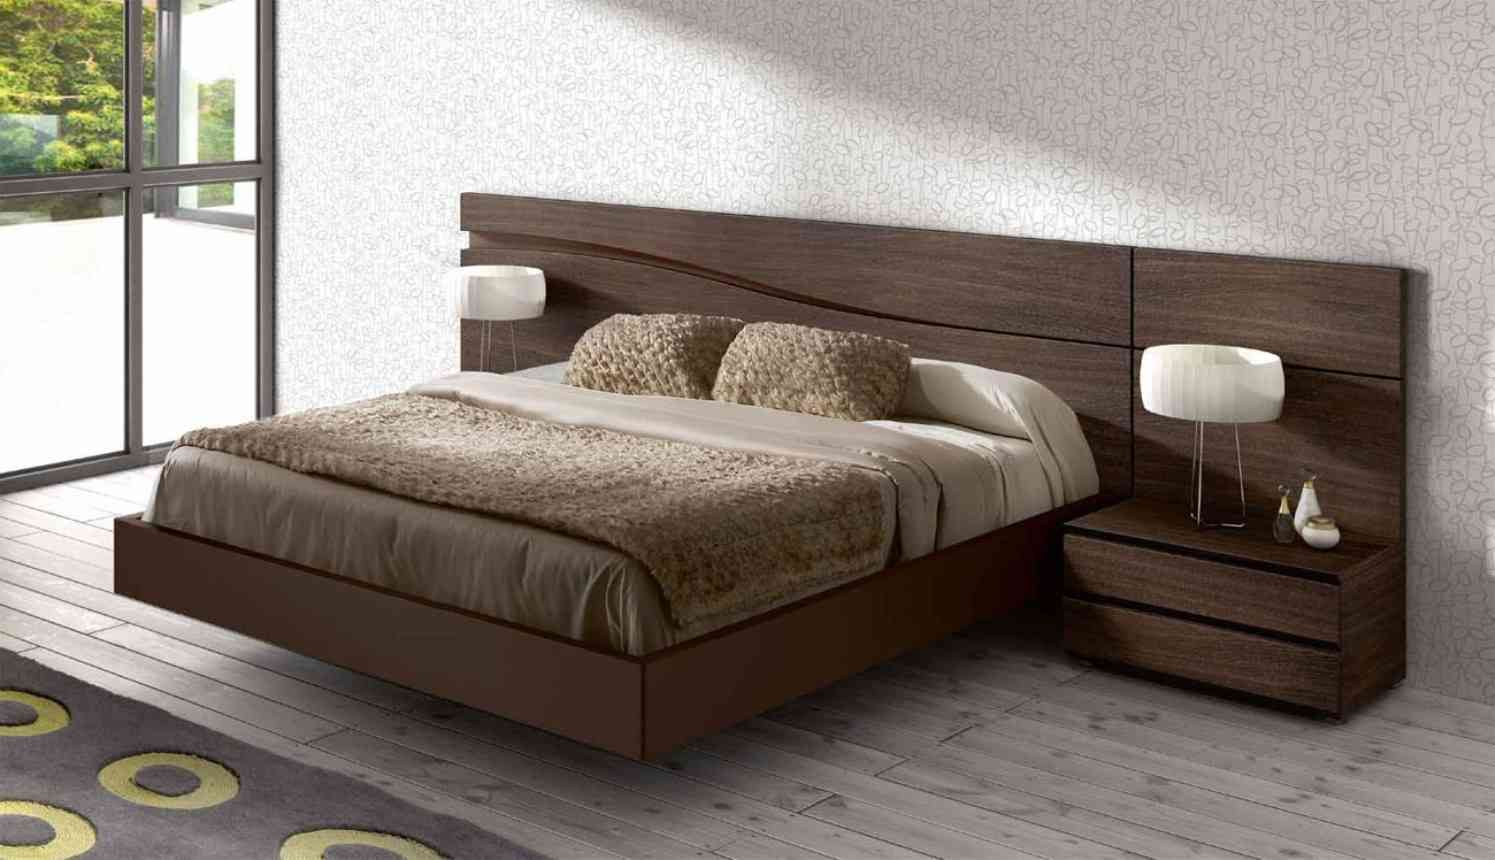 Modern Bed Designs Wood Pin By Kb Moh On Hotel Interior Bedroom Bed Design